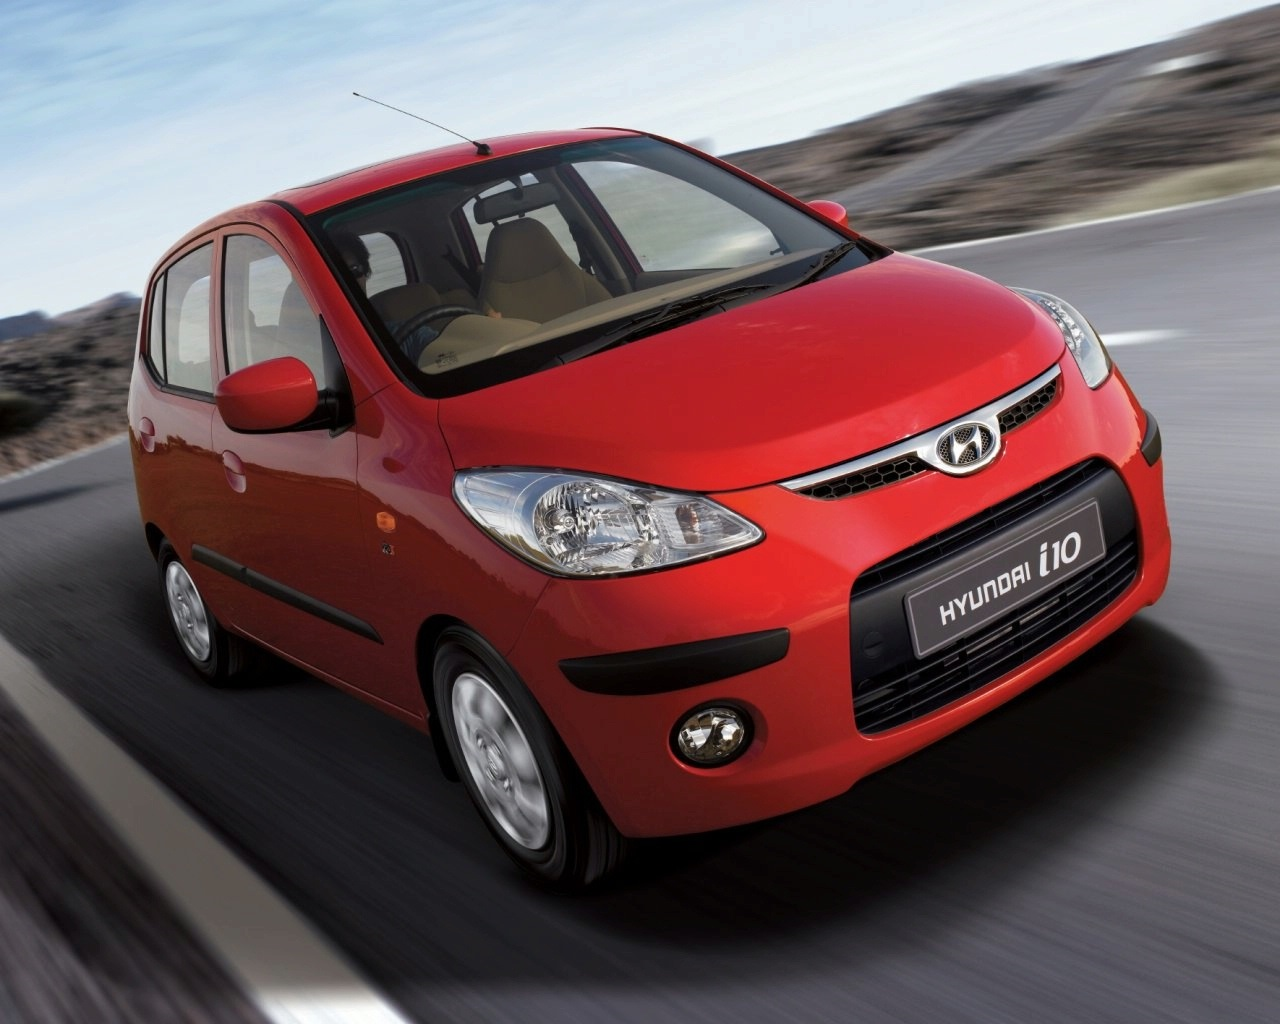 2007 hyundai i10 pictures information and specs auto. Black Bedroom Furniture Sets. Home Design Ideas